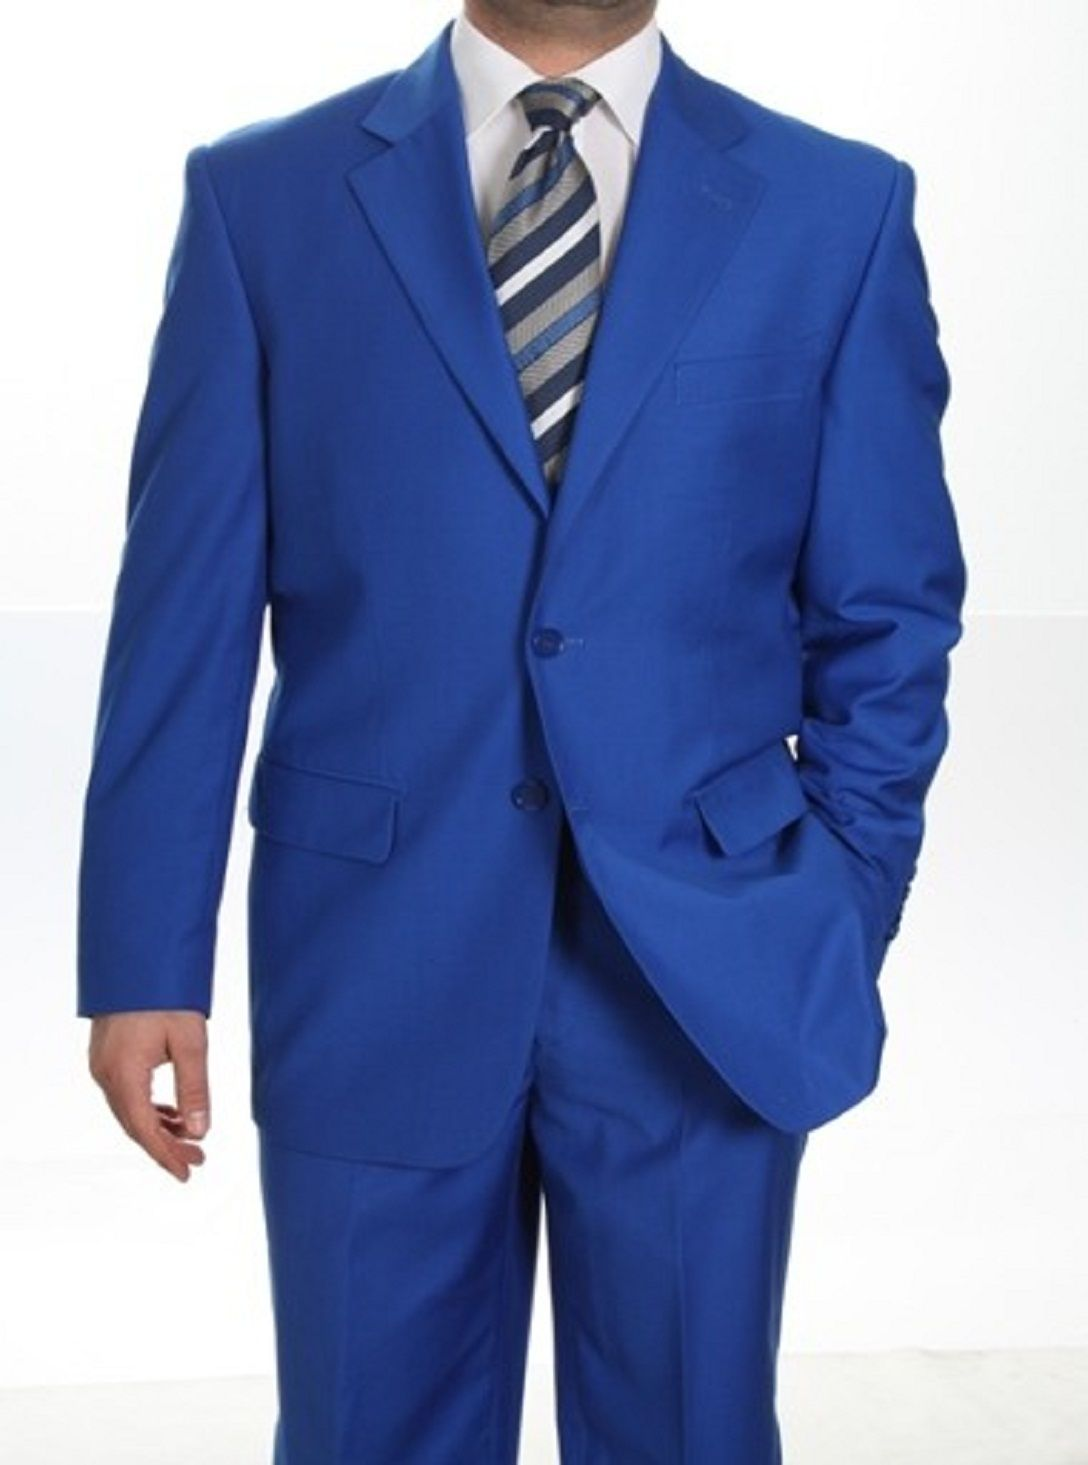 mens suits | Men's Royal Blue Suit: Men's Suits & Formal Wear ...